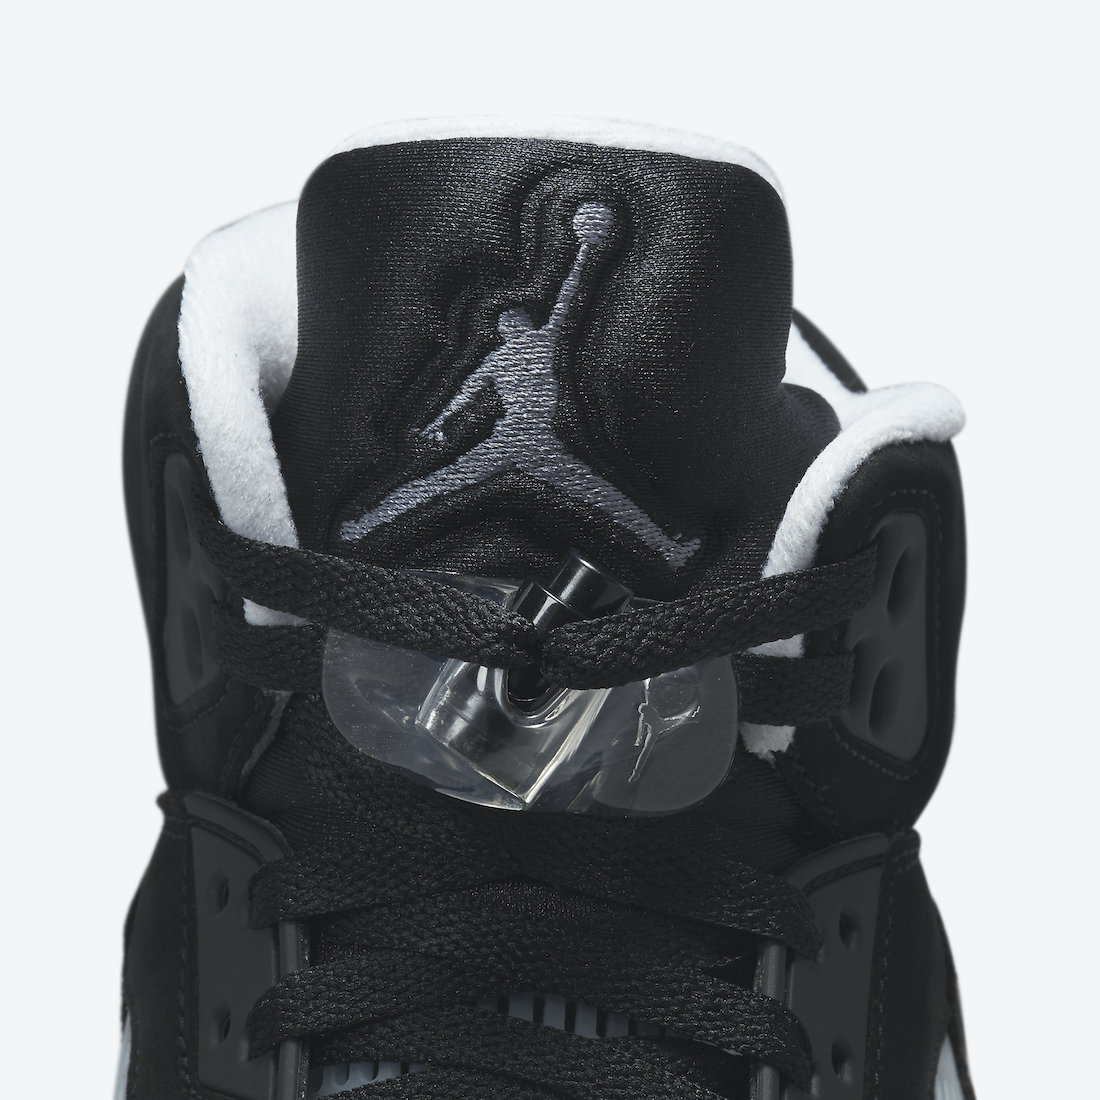 Look for the 2021 CT4838-011 Release Date